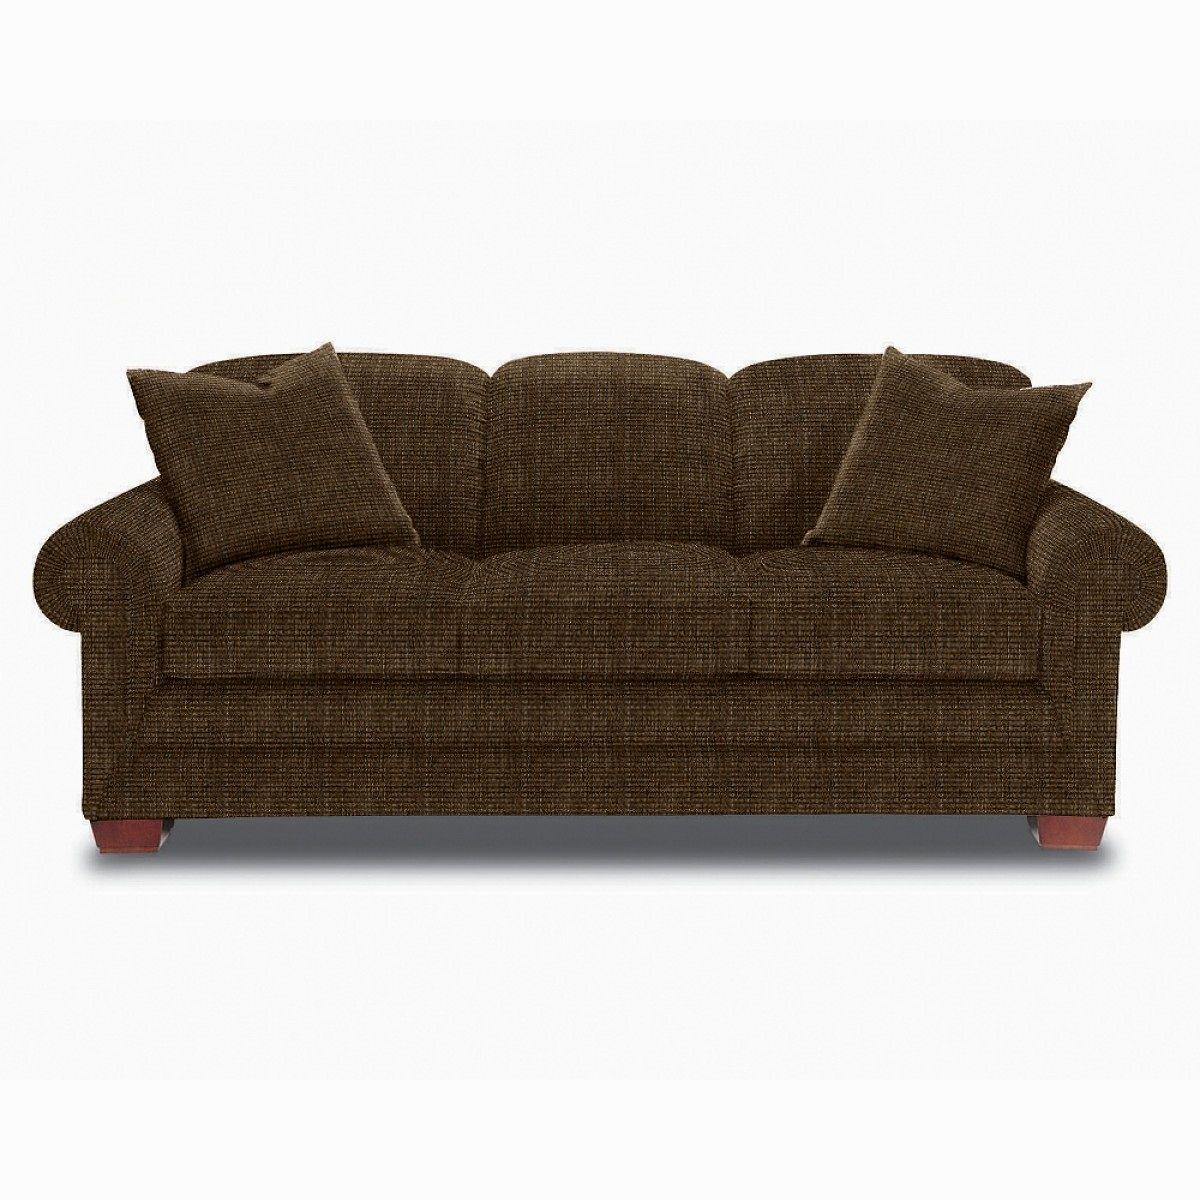 top best sectional sofa reviews collection-Excellent Best Sectional sofa Reviews Concept